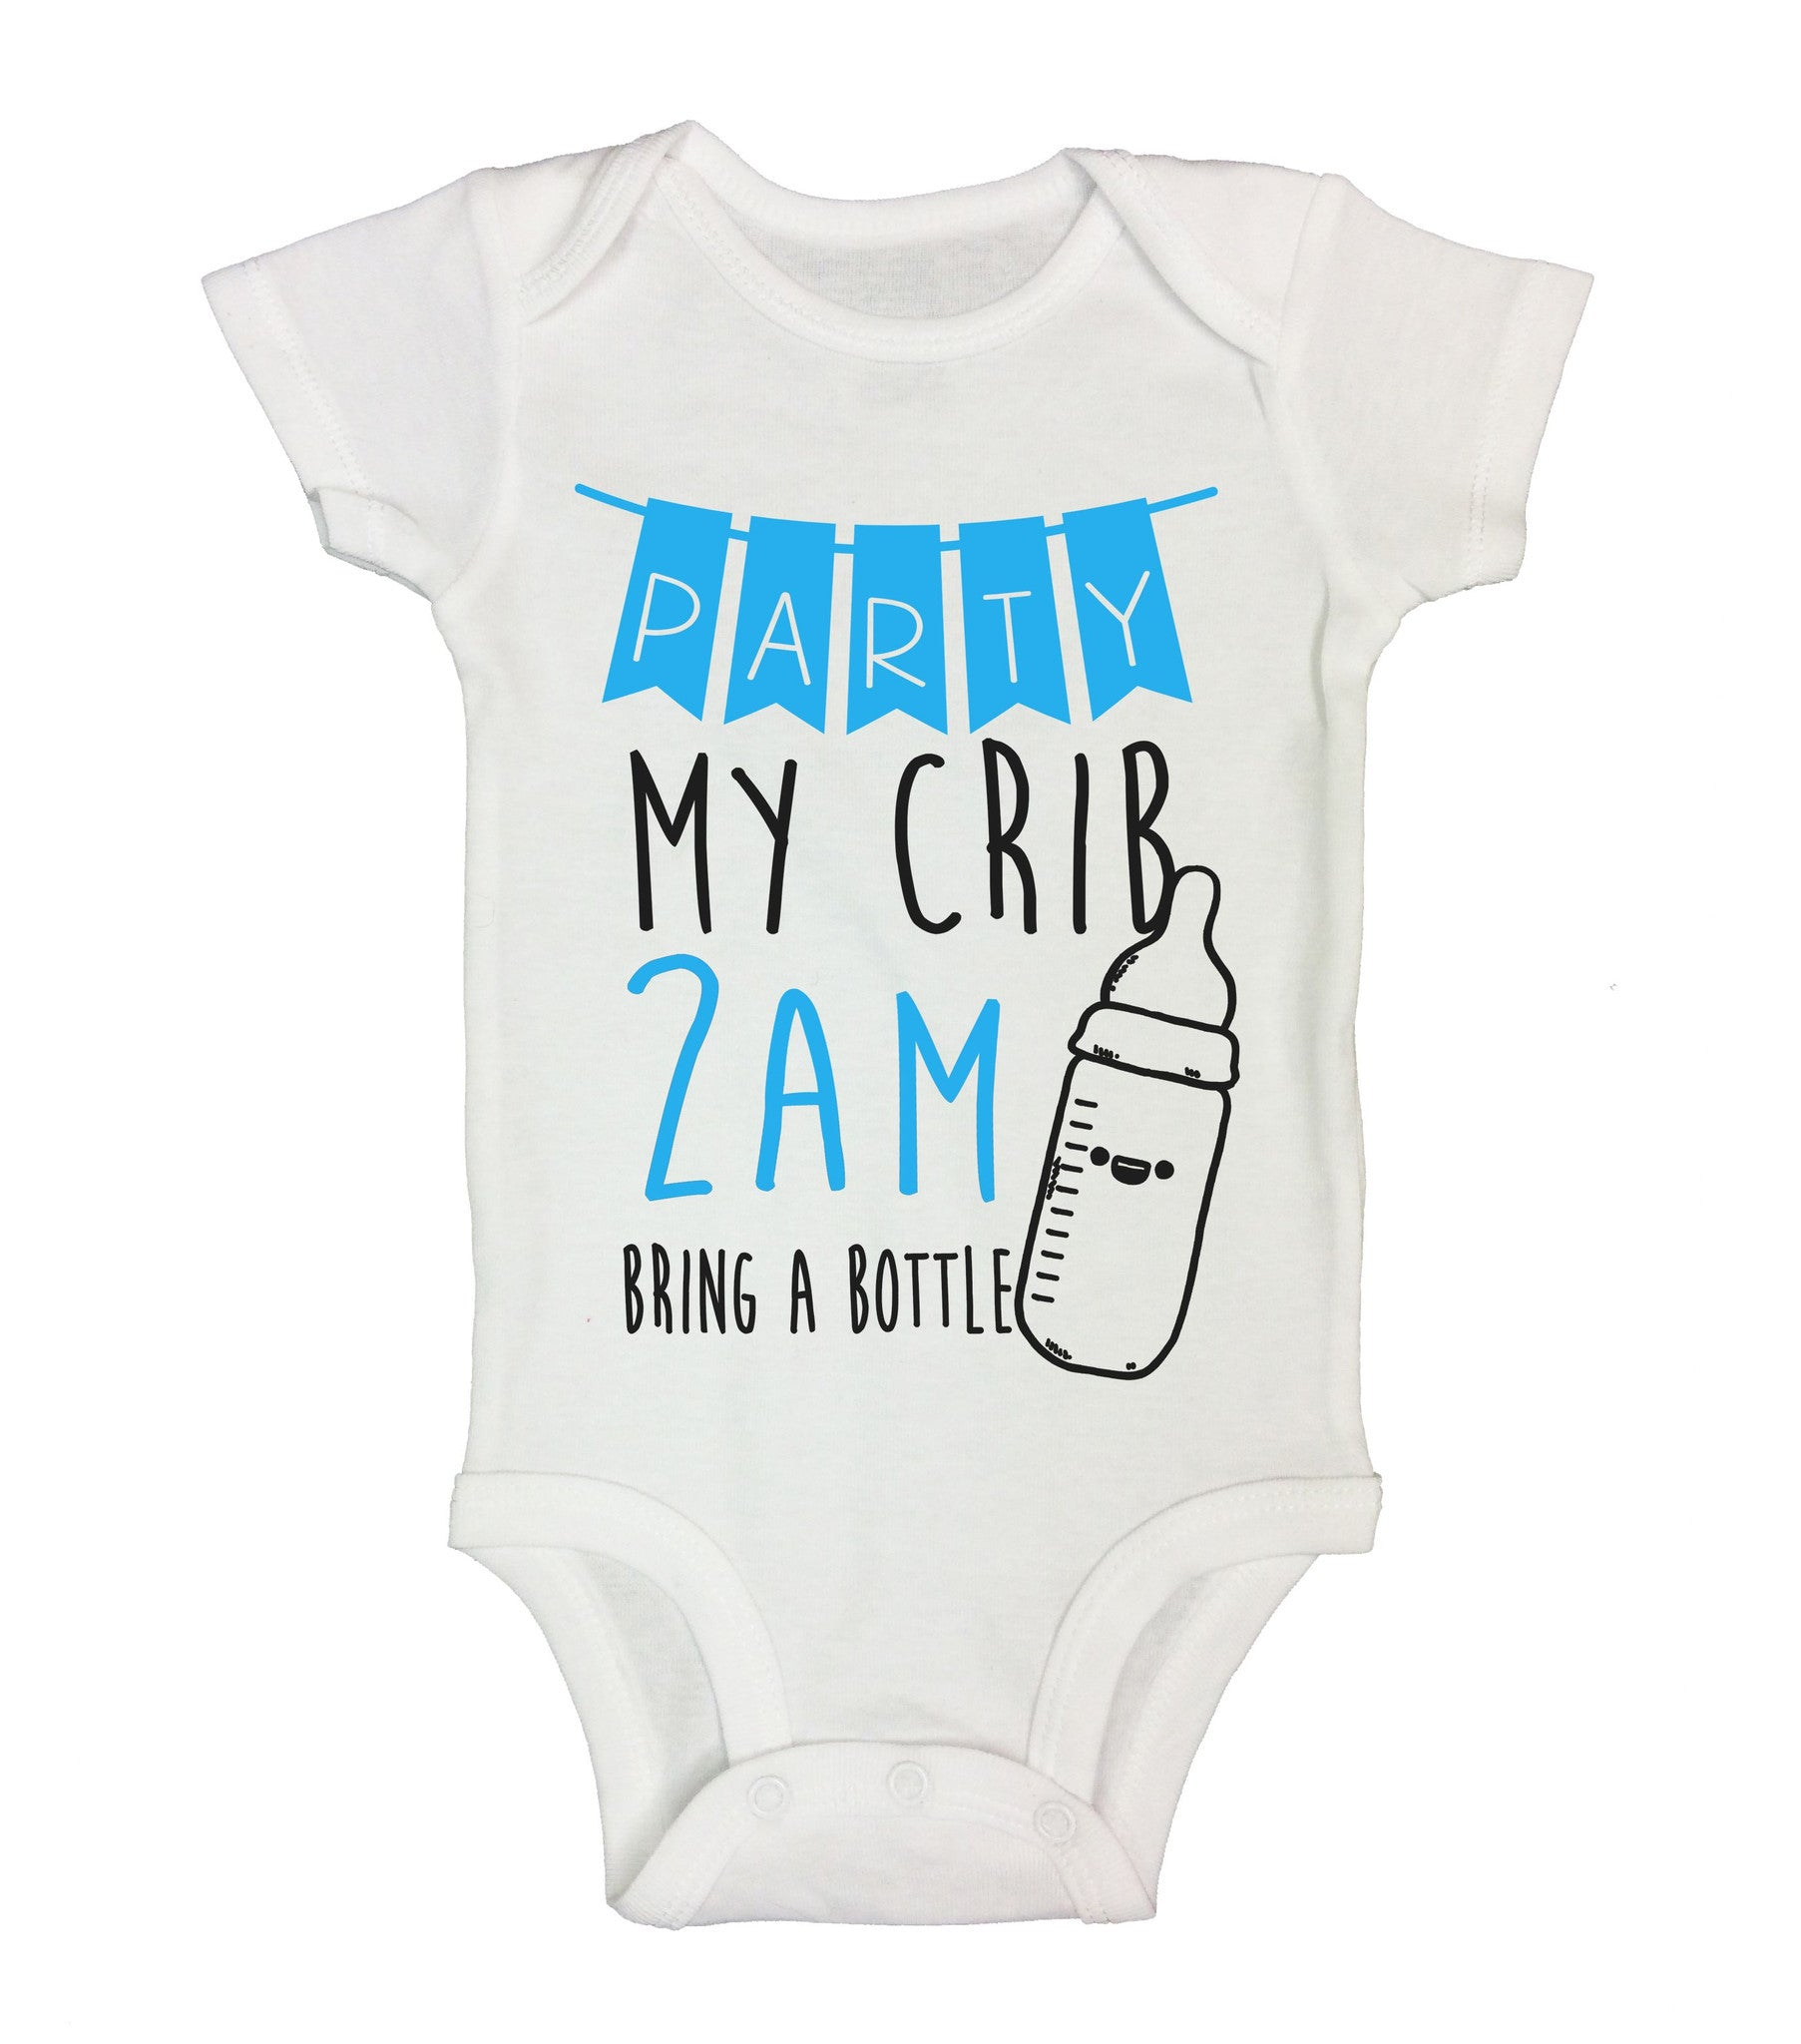 Party My Crib 2Am Bring A Bottle Funny Kids Onesie - B151 - Funny Shirts Tank Tops Burnouts and Triblends  - 2